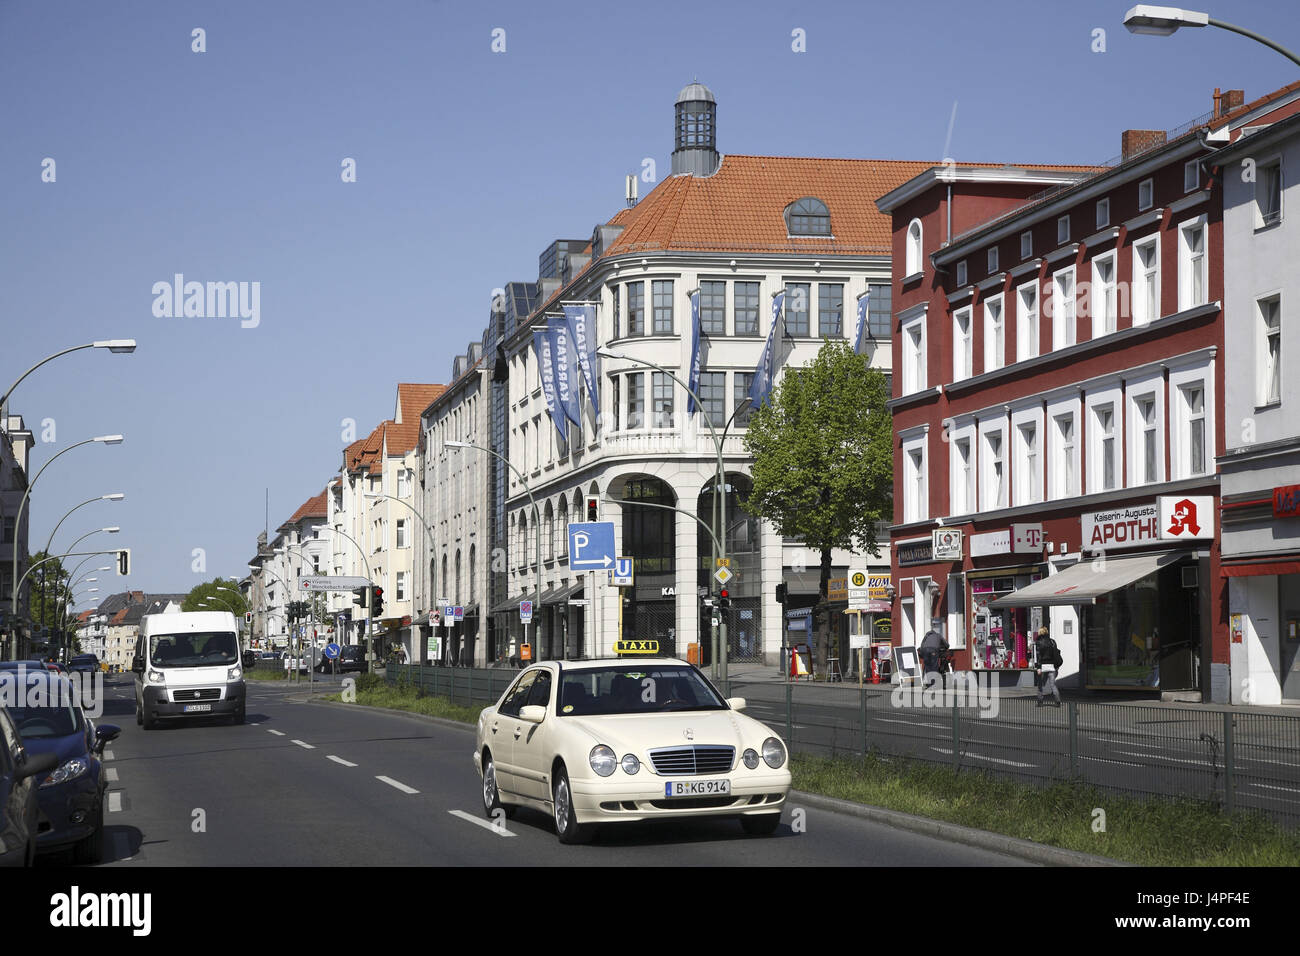 Germany, Berlin, Tempelhofer embankment, street scene, - Stock Image